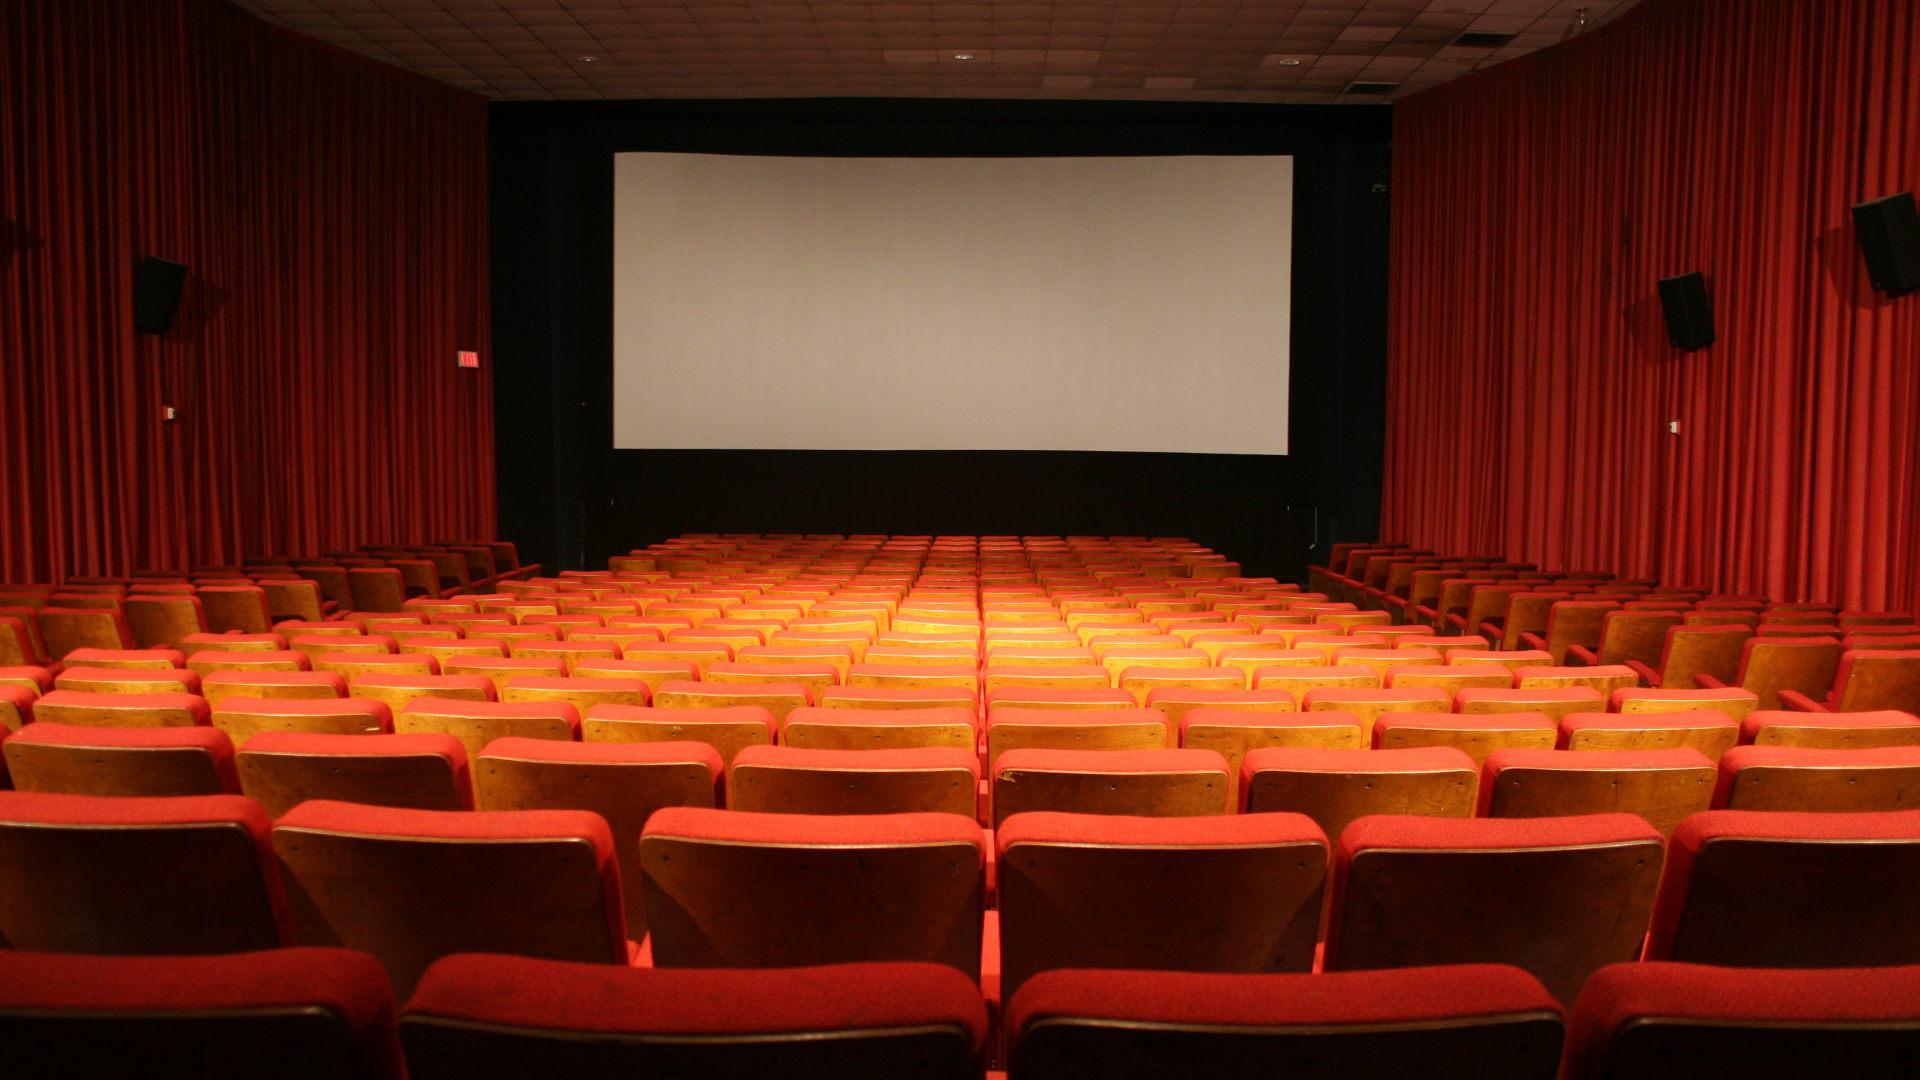 cinema-movie-theater.jpg